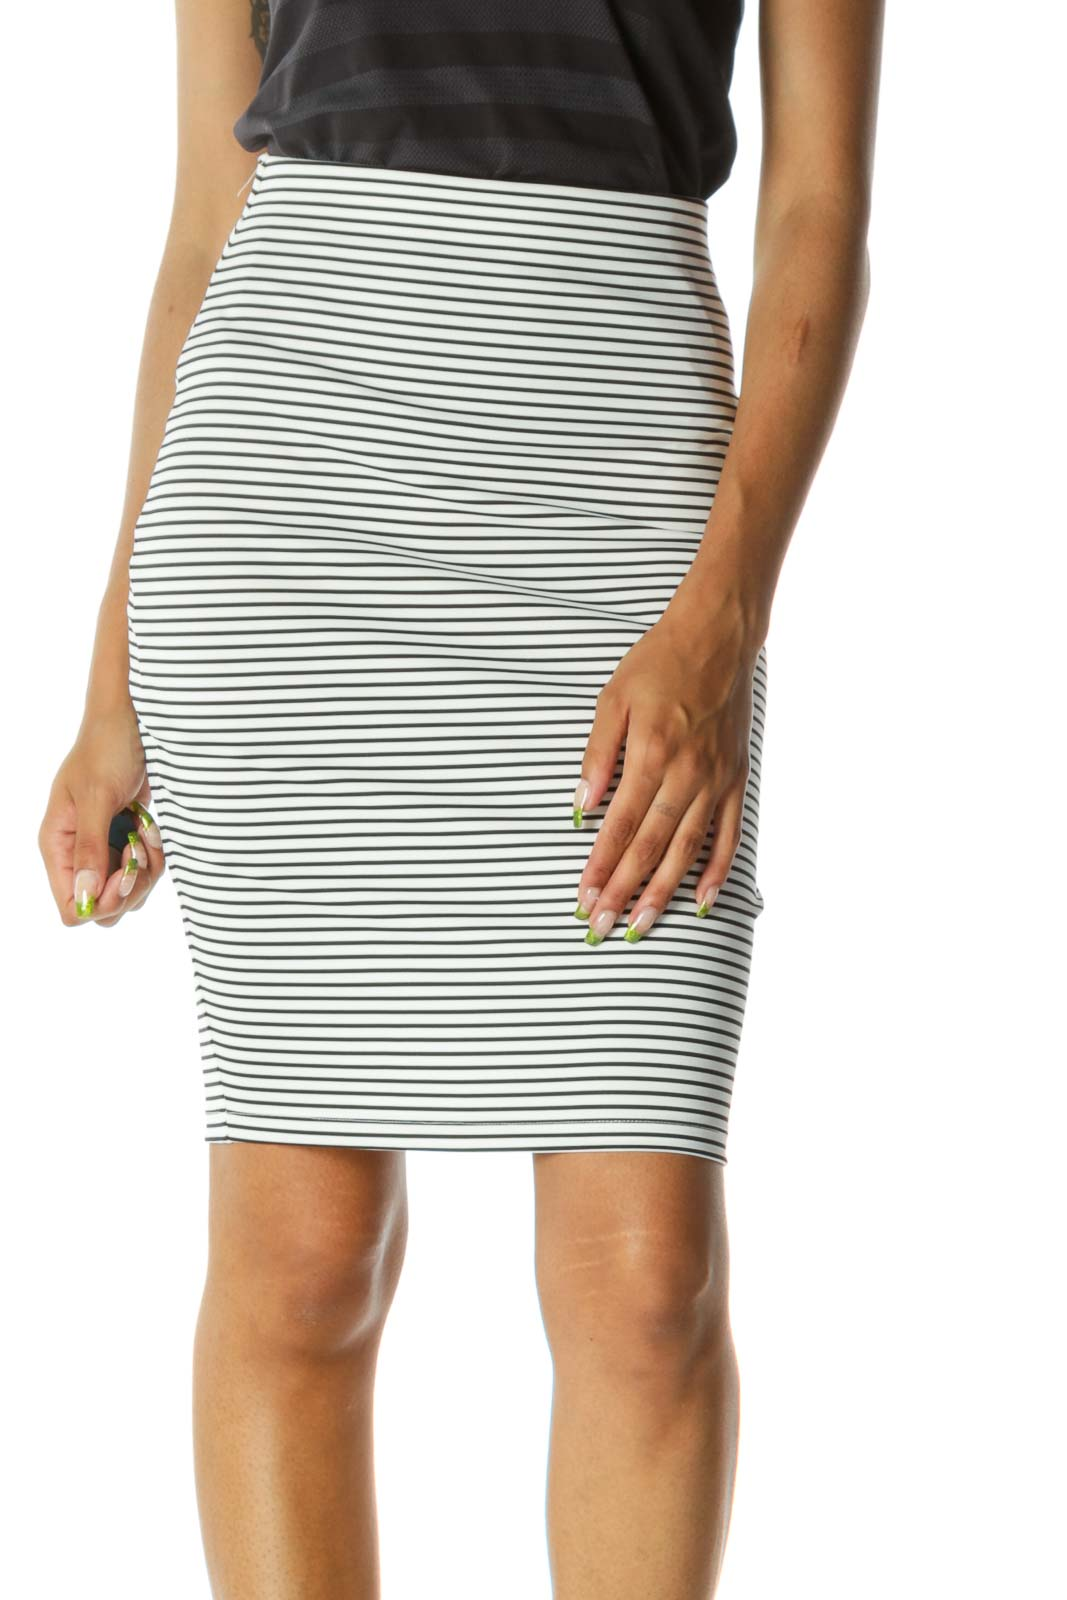 Black White Striped Elastic Band Stretch Pencil Skirt